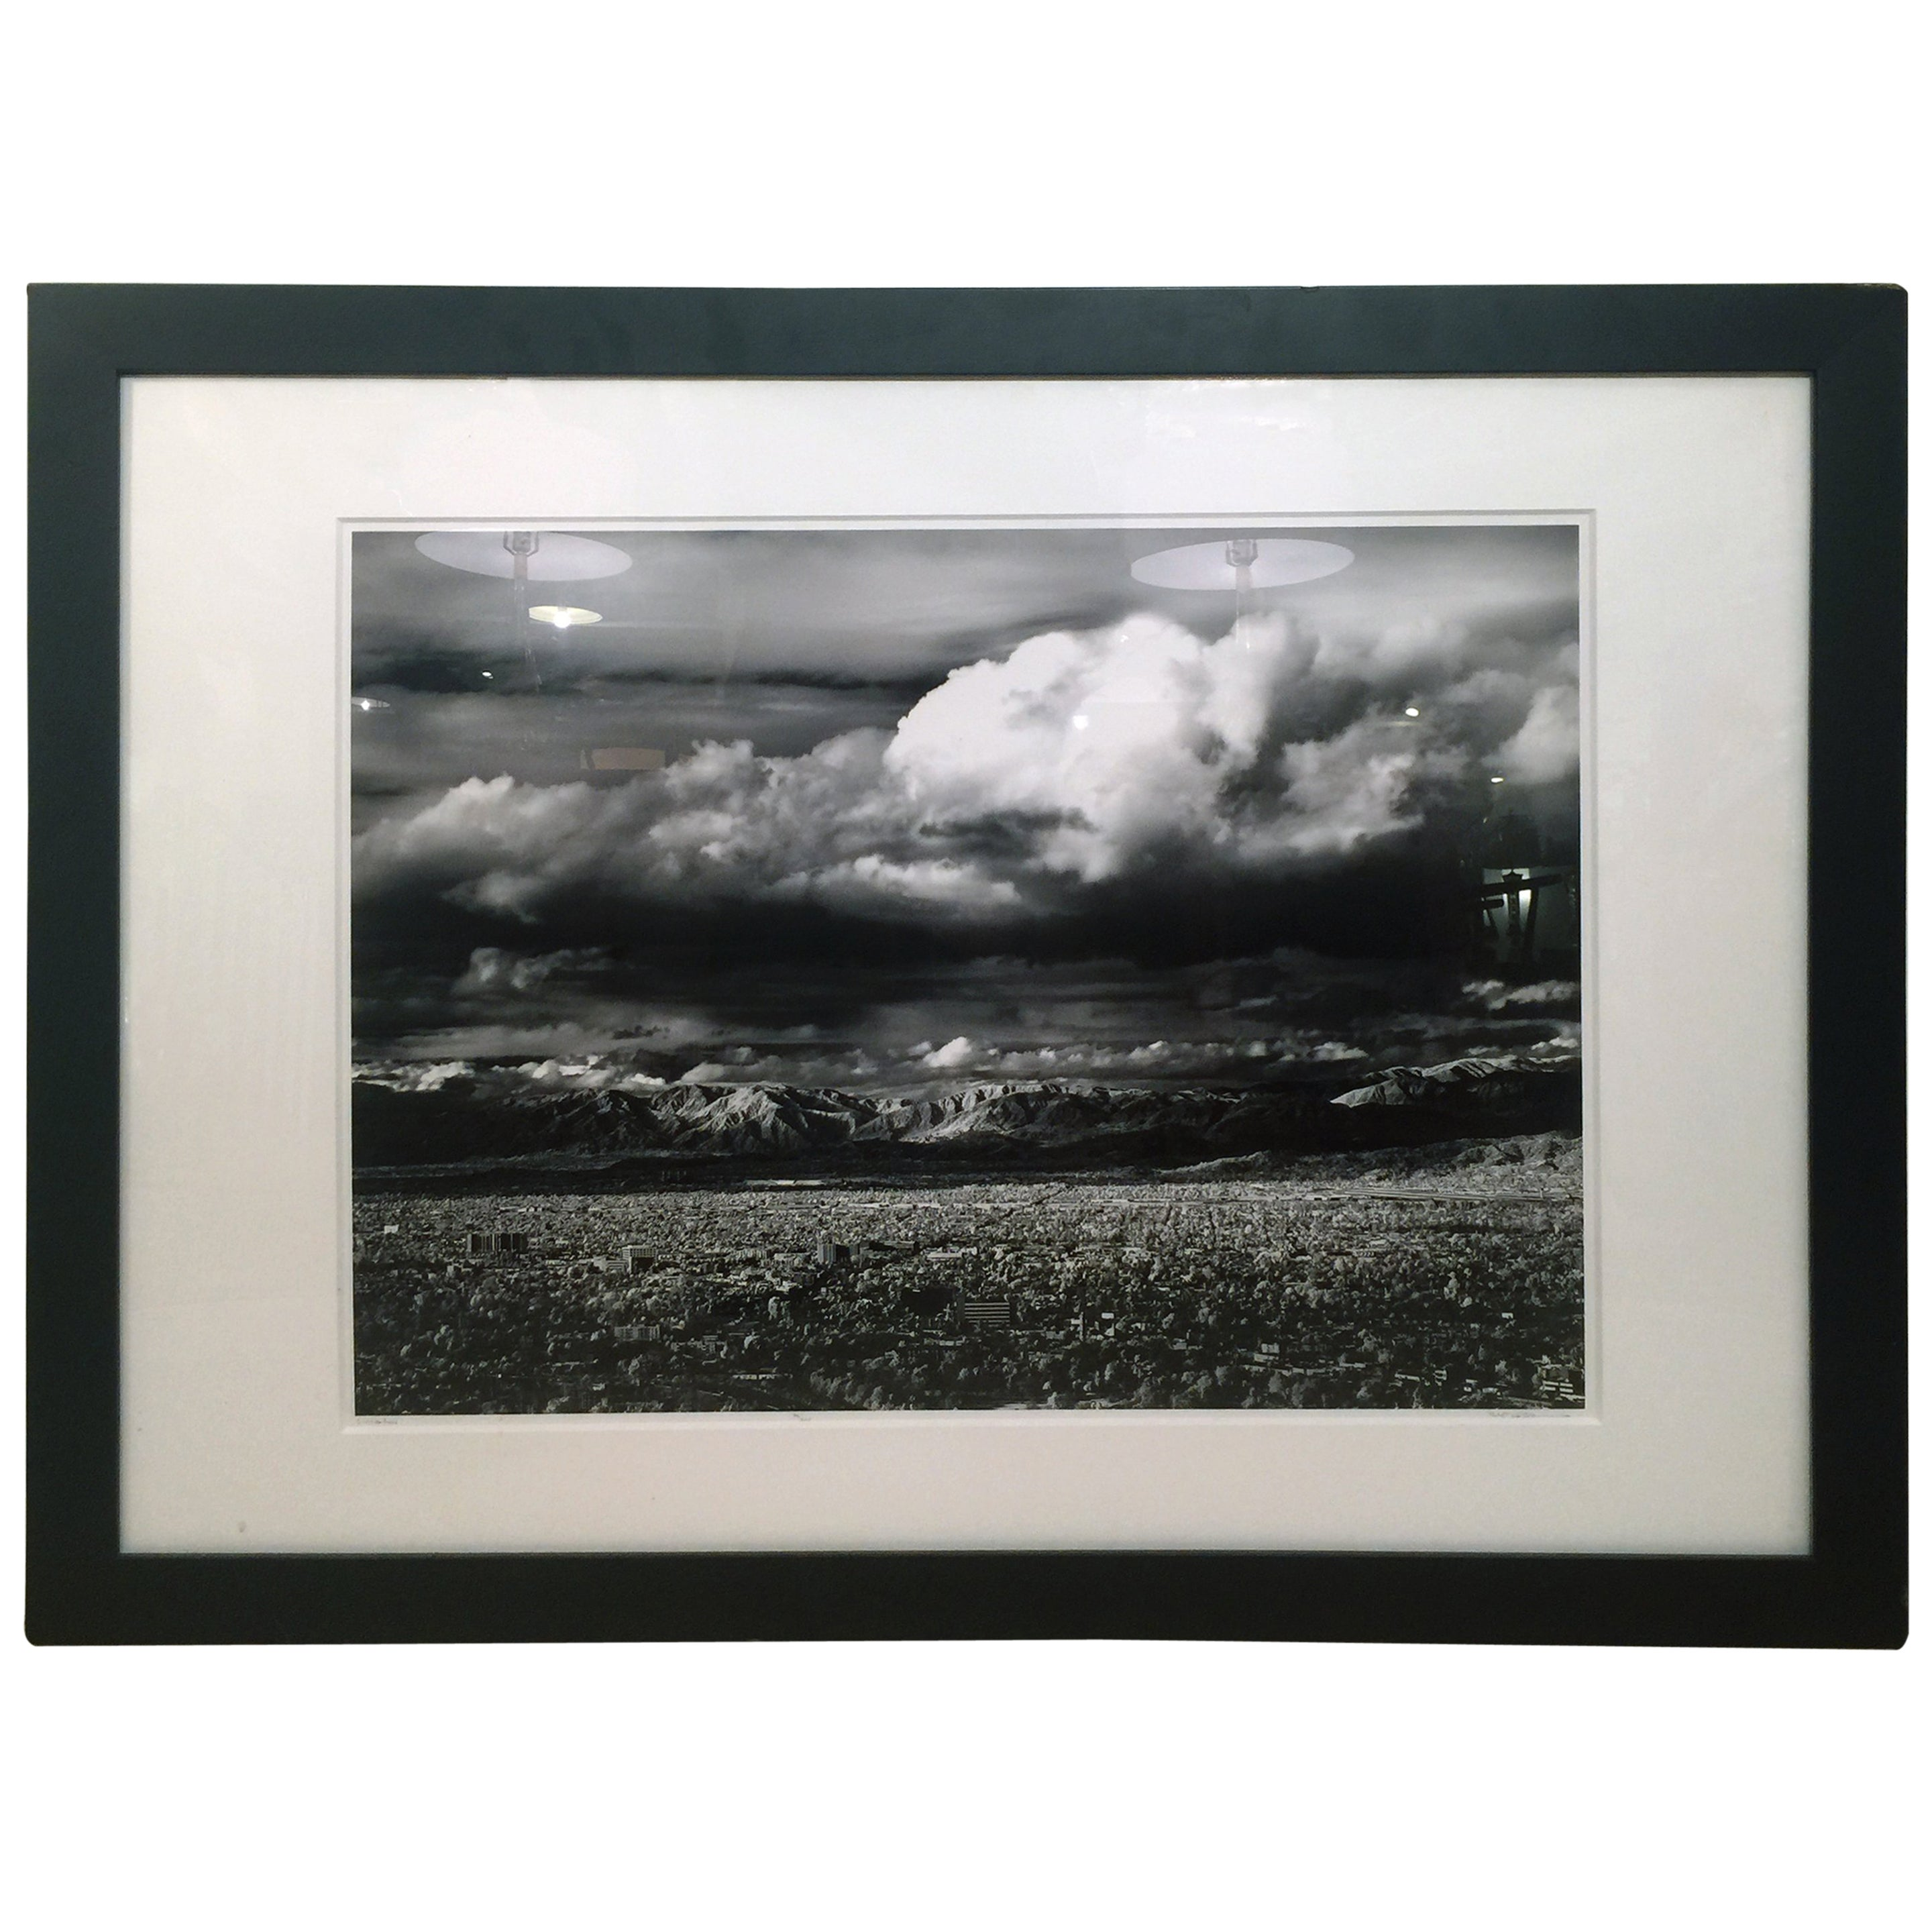 Signed Limited Edition Photograph by Mitch Dobrowner